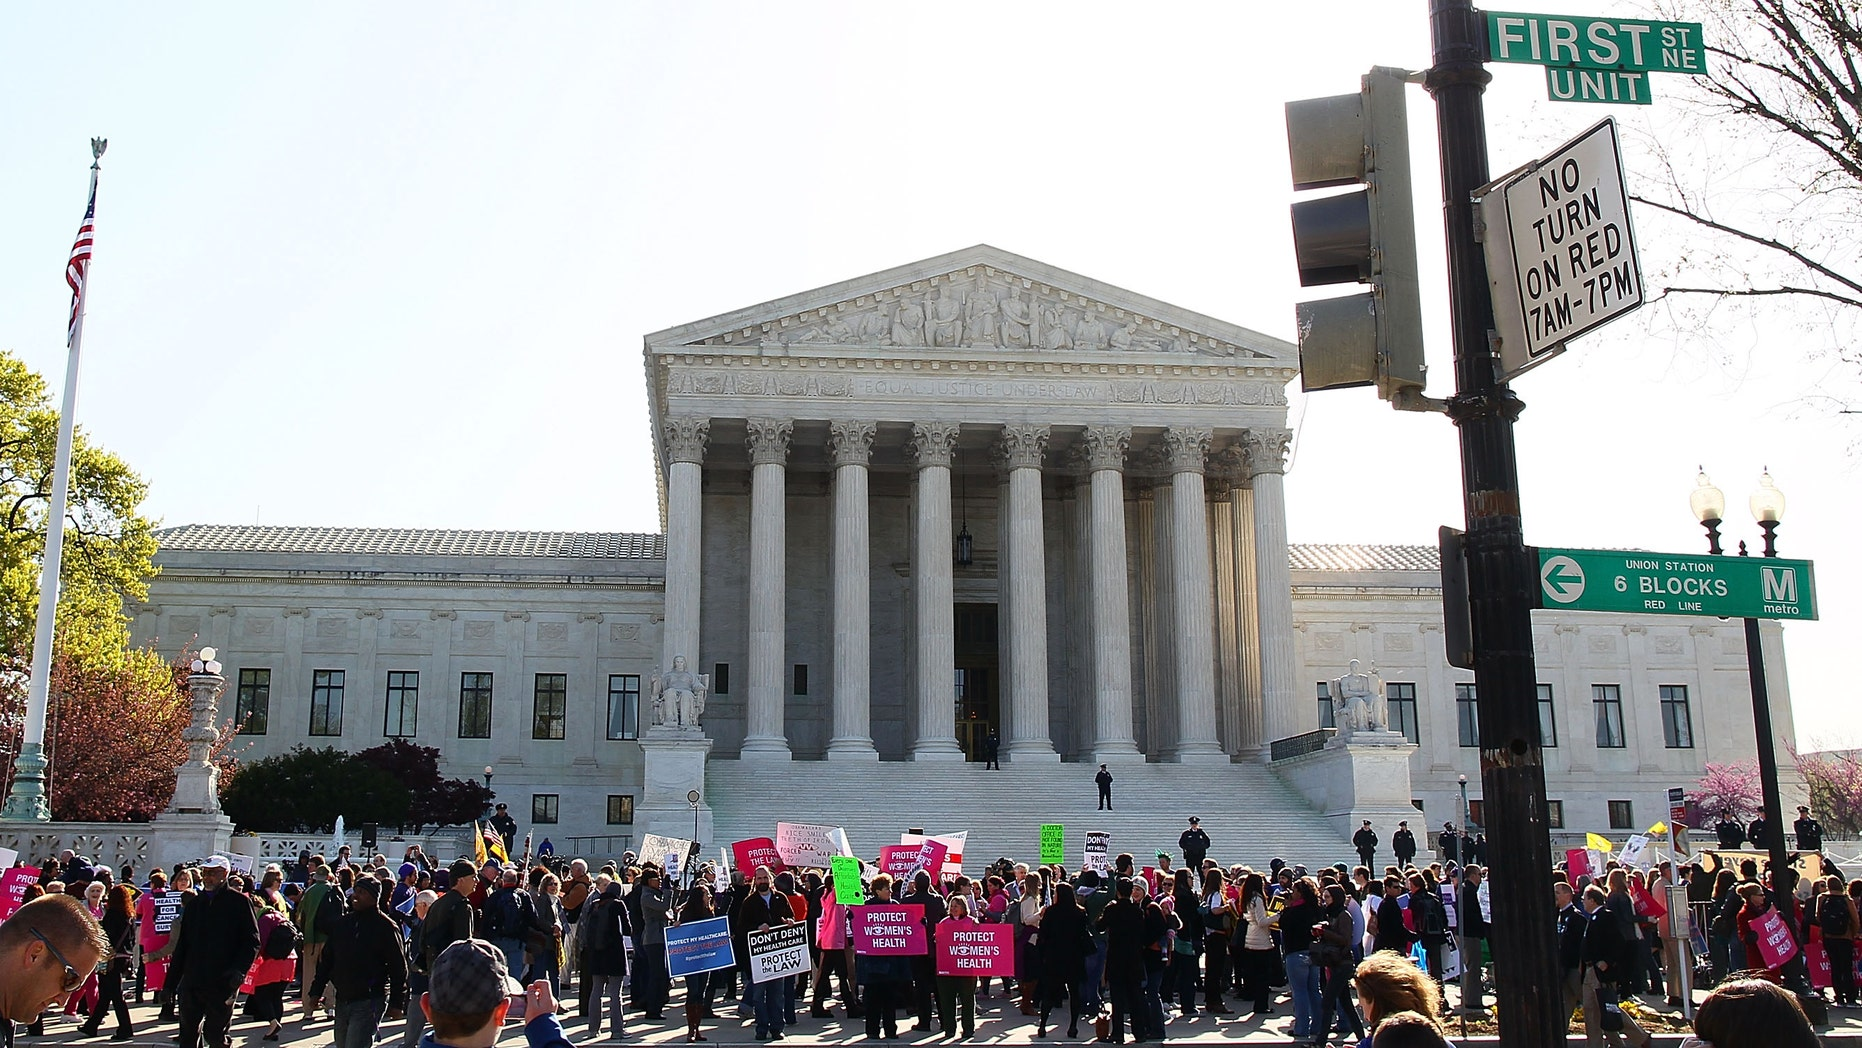 WASHINGTON, DC - MARCH 27:  People participate in a protest on the second day of oral arguments for the Patient Protection and Affordable Care Act in front of the U.S. Supreme Court building on March 27, 2012 in Washington, DC. Today is the second of three days the high court has set aside to hear six hours of arguments over the constitutionality President Barack Obama's Patient Protection and Affordable Care Act.  (Photo by Mark Wilson/Getty Images)